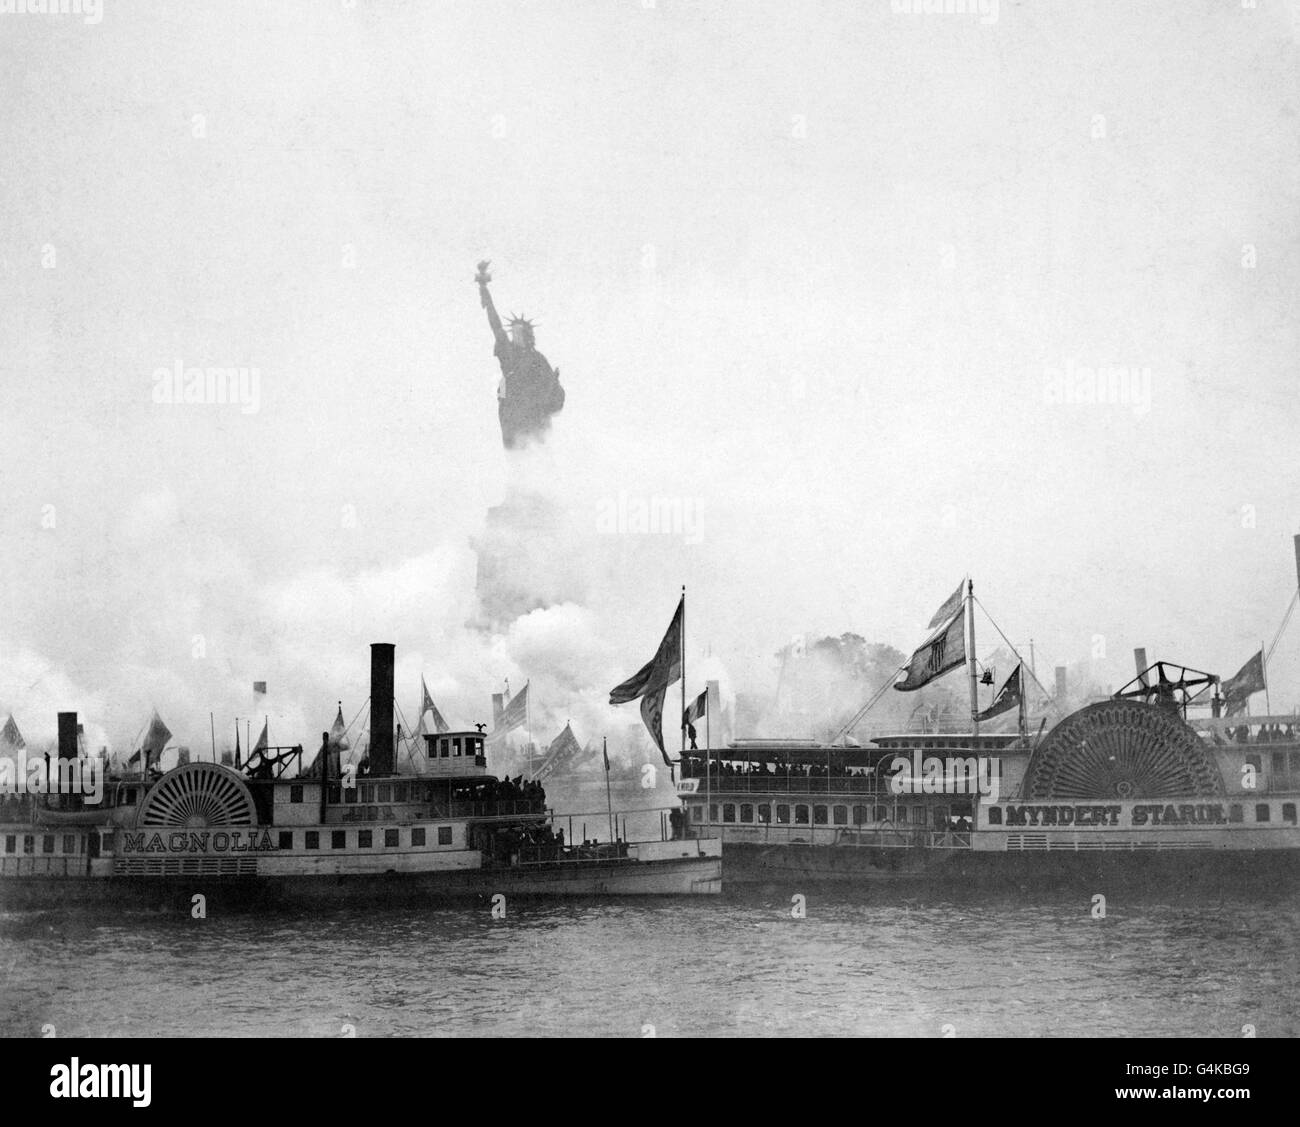 Statue of Liberty, 1886. Inauguration of the The Statue of Liberty on 28th October 1886 - Stock Image